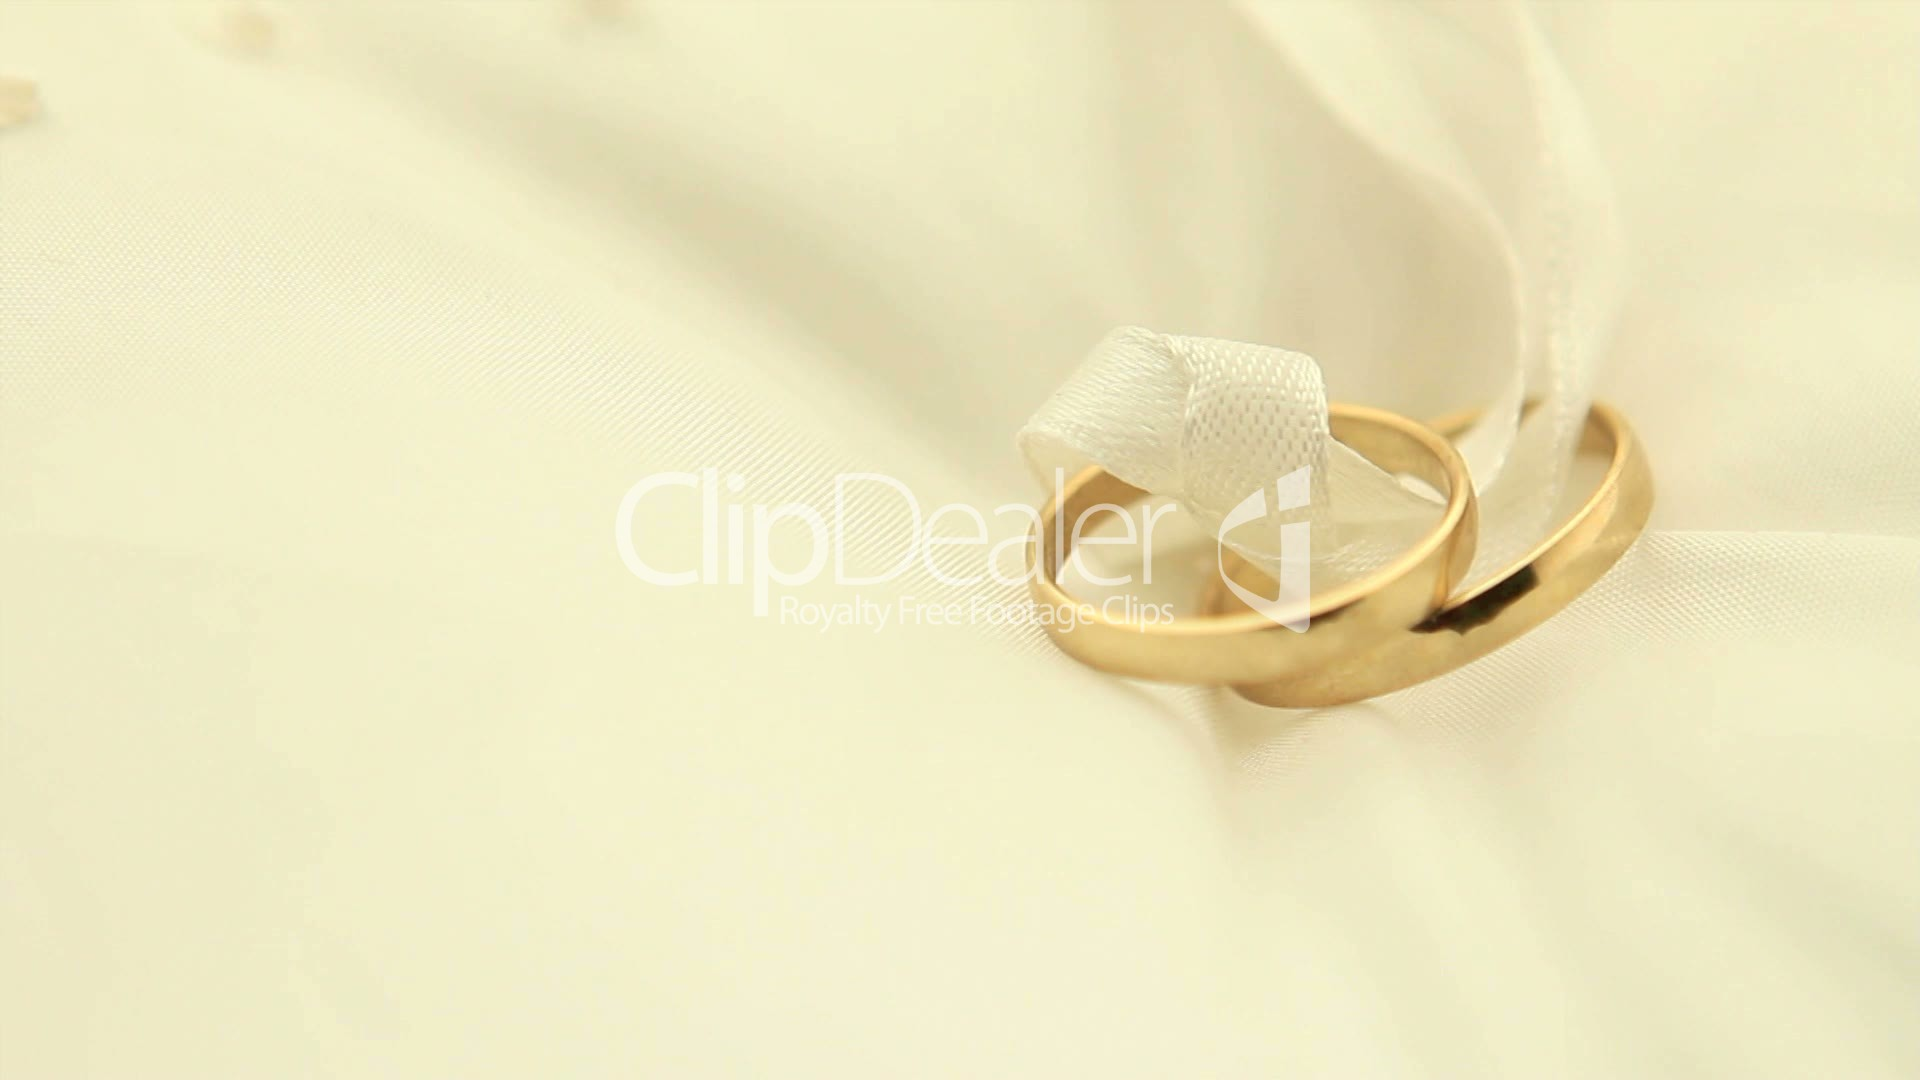 Wedding Rings Hochzeitsringe Royalty Free Video And Stock Footage